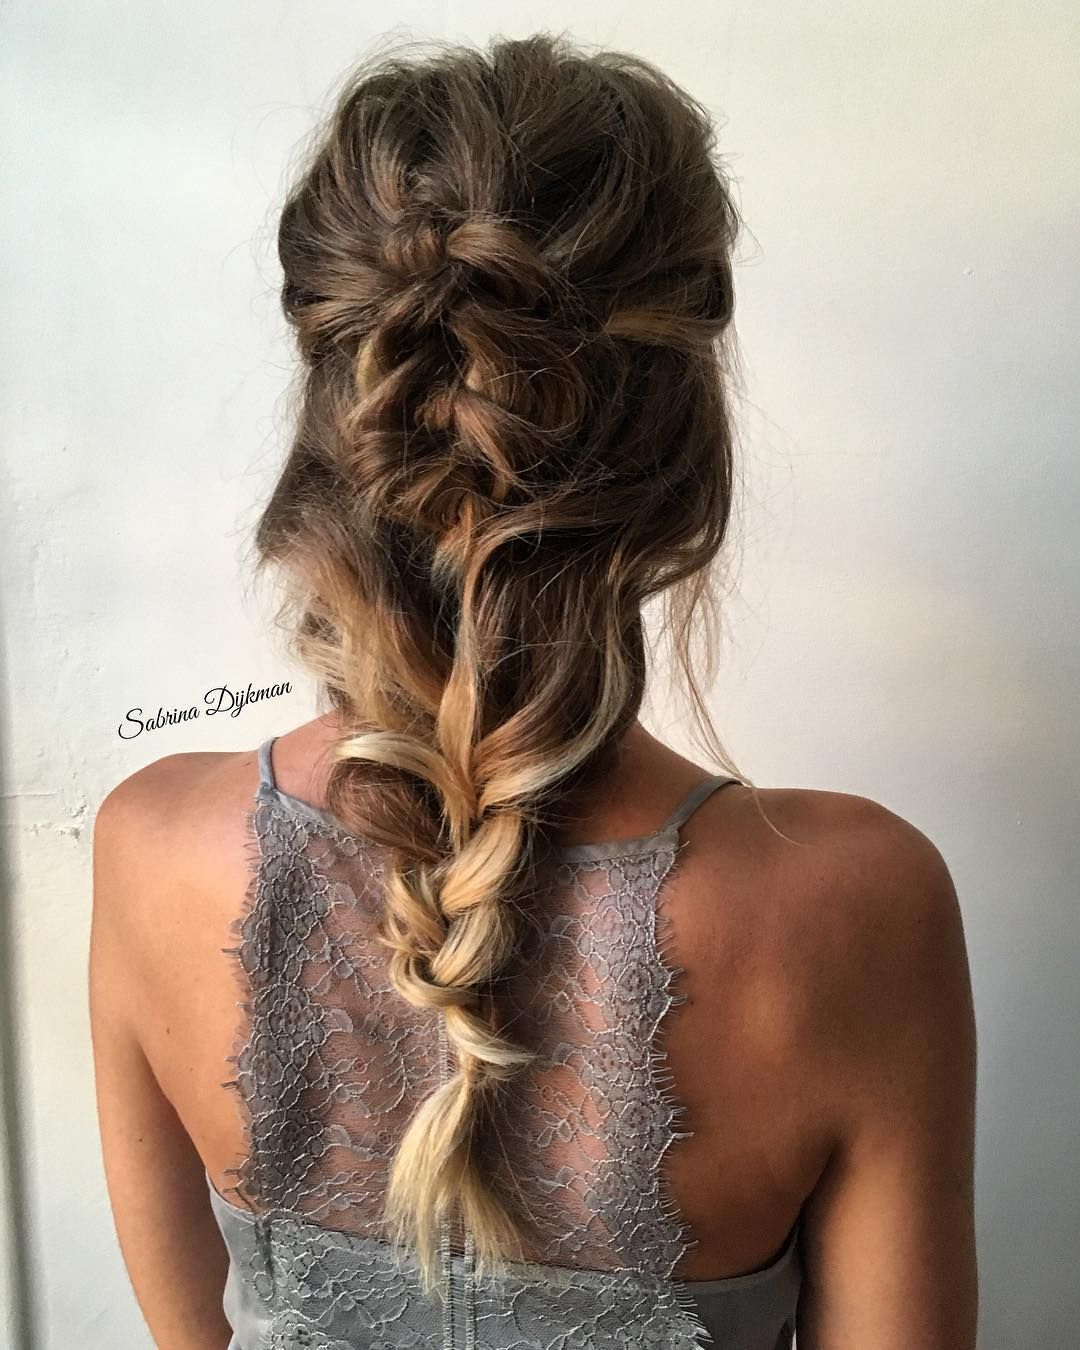 Gorgeous hairstyle inspiration updo wedding hairstyle braids